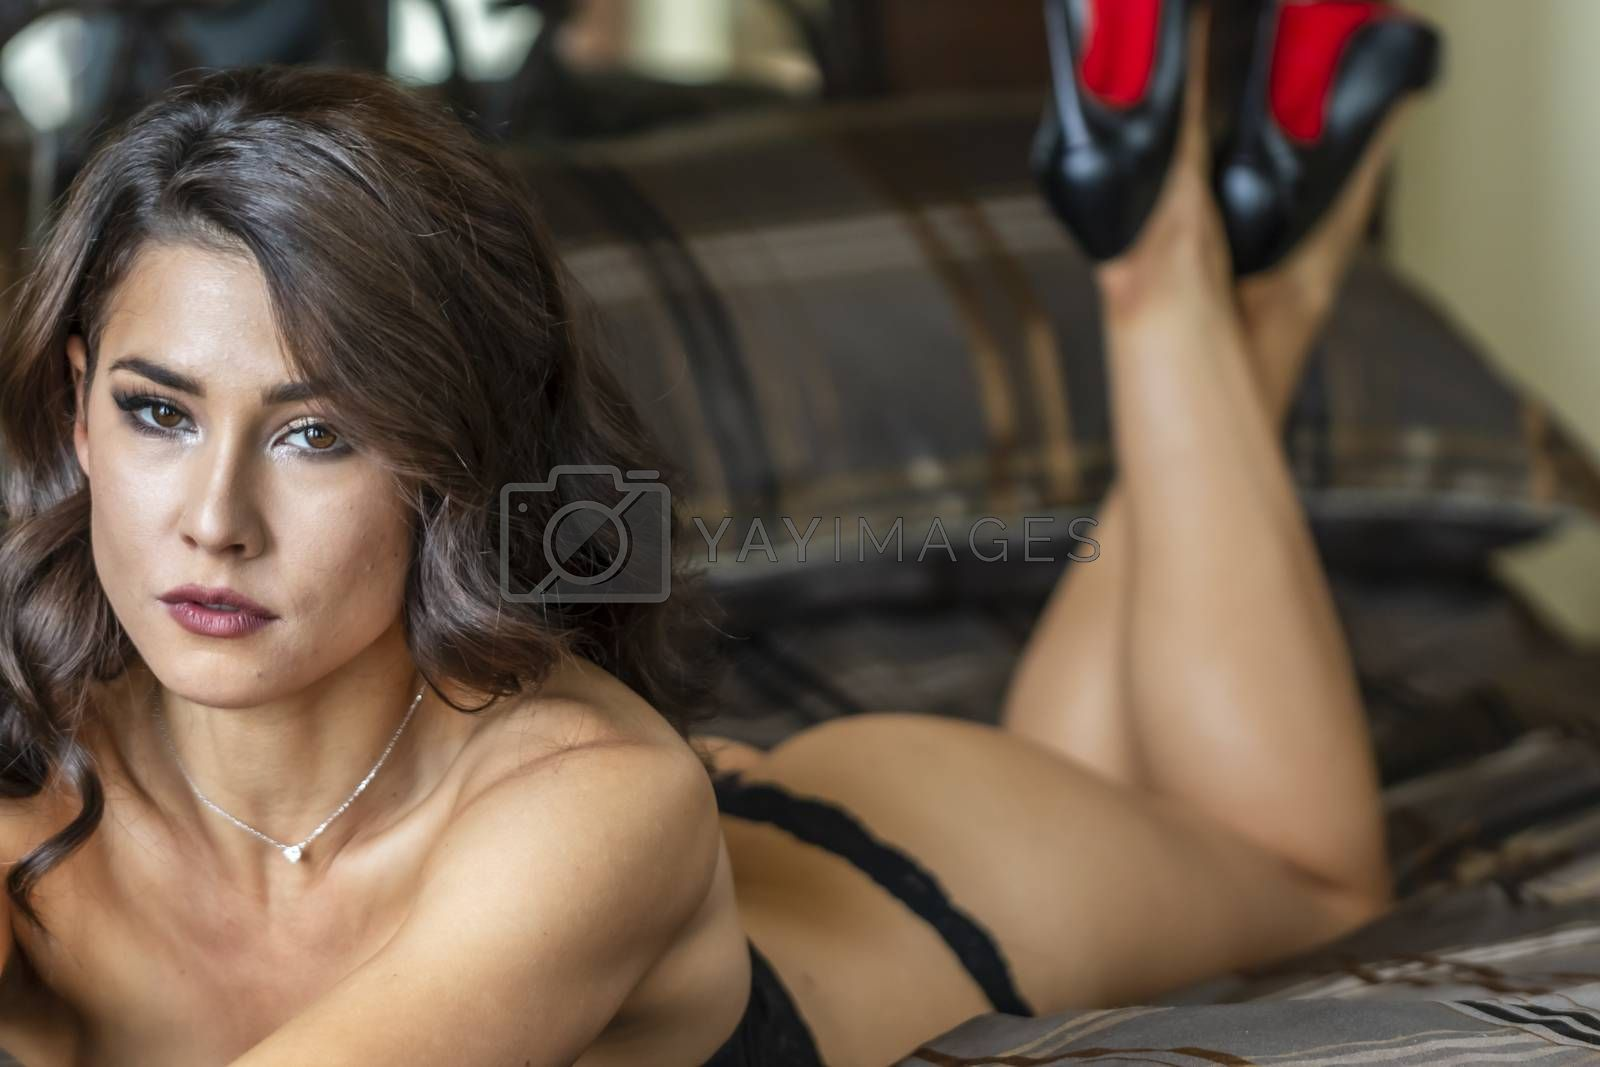 A gorgeous brunette model poses in lingerie in a bedroom environment